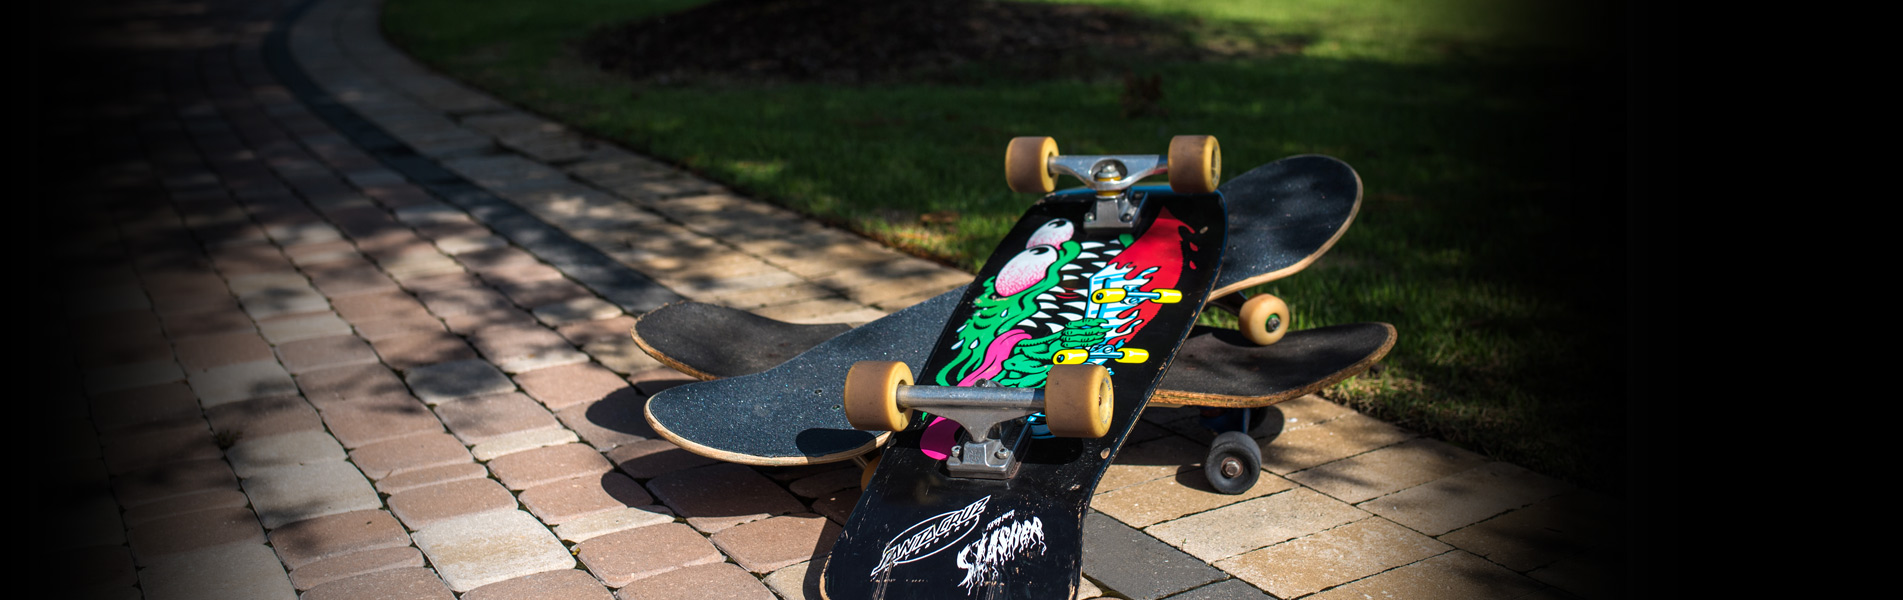 Objects of Affection - Skate Life